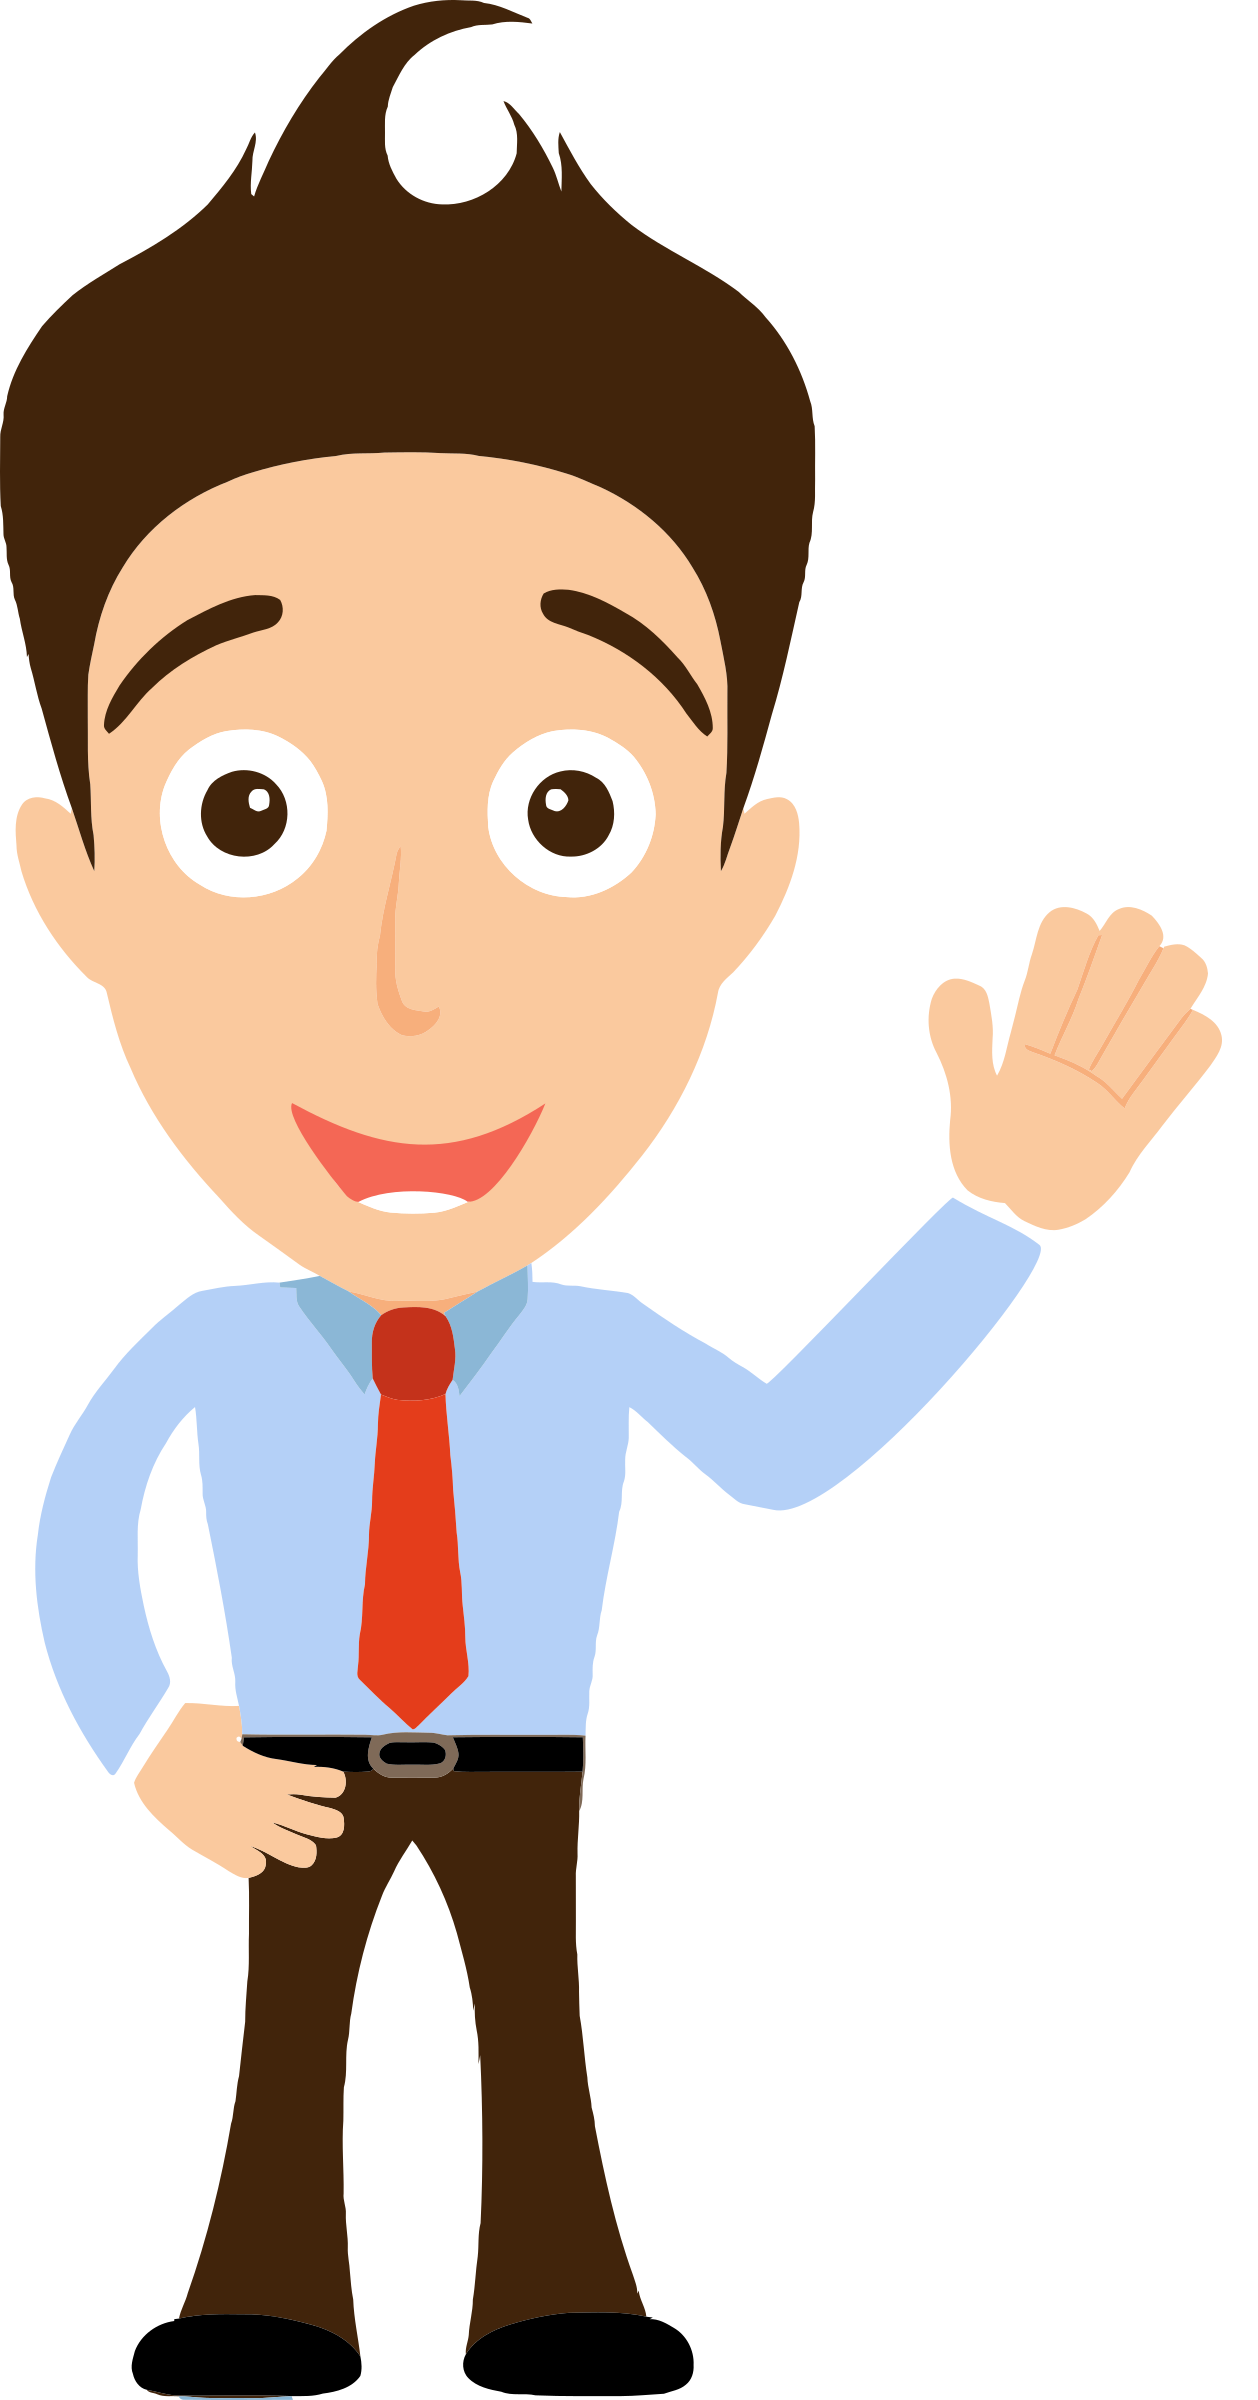 clipart freeuse library Free clip art man. Working men clipart.